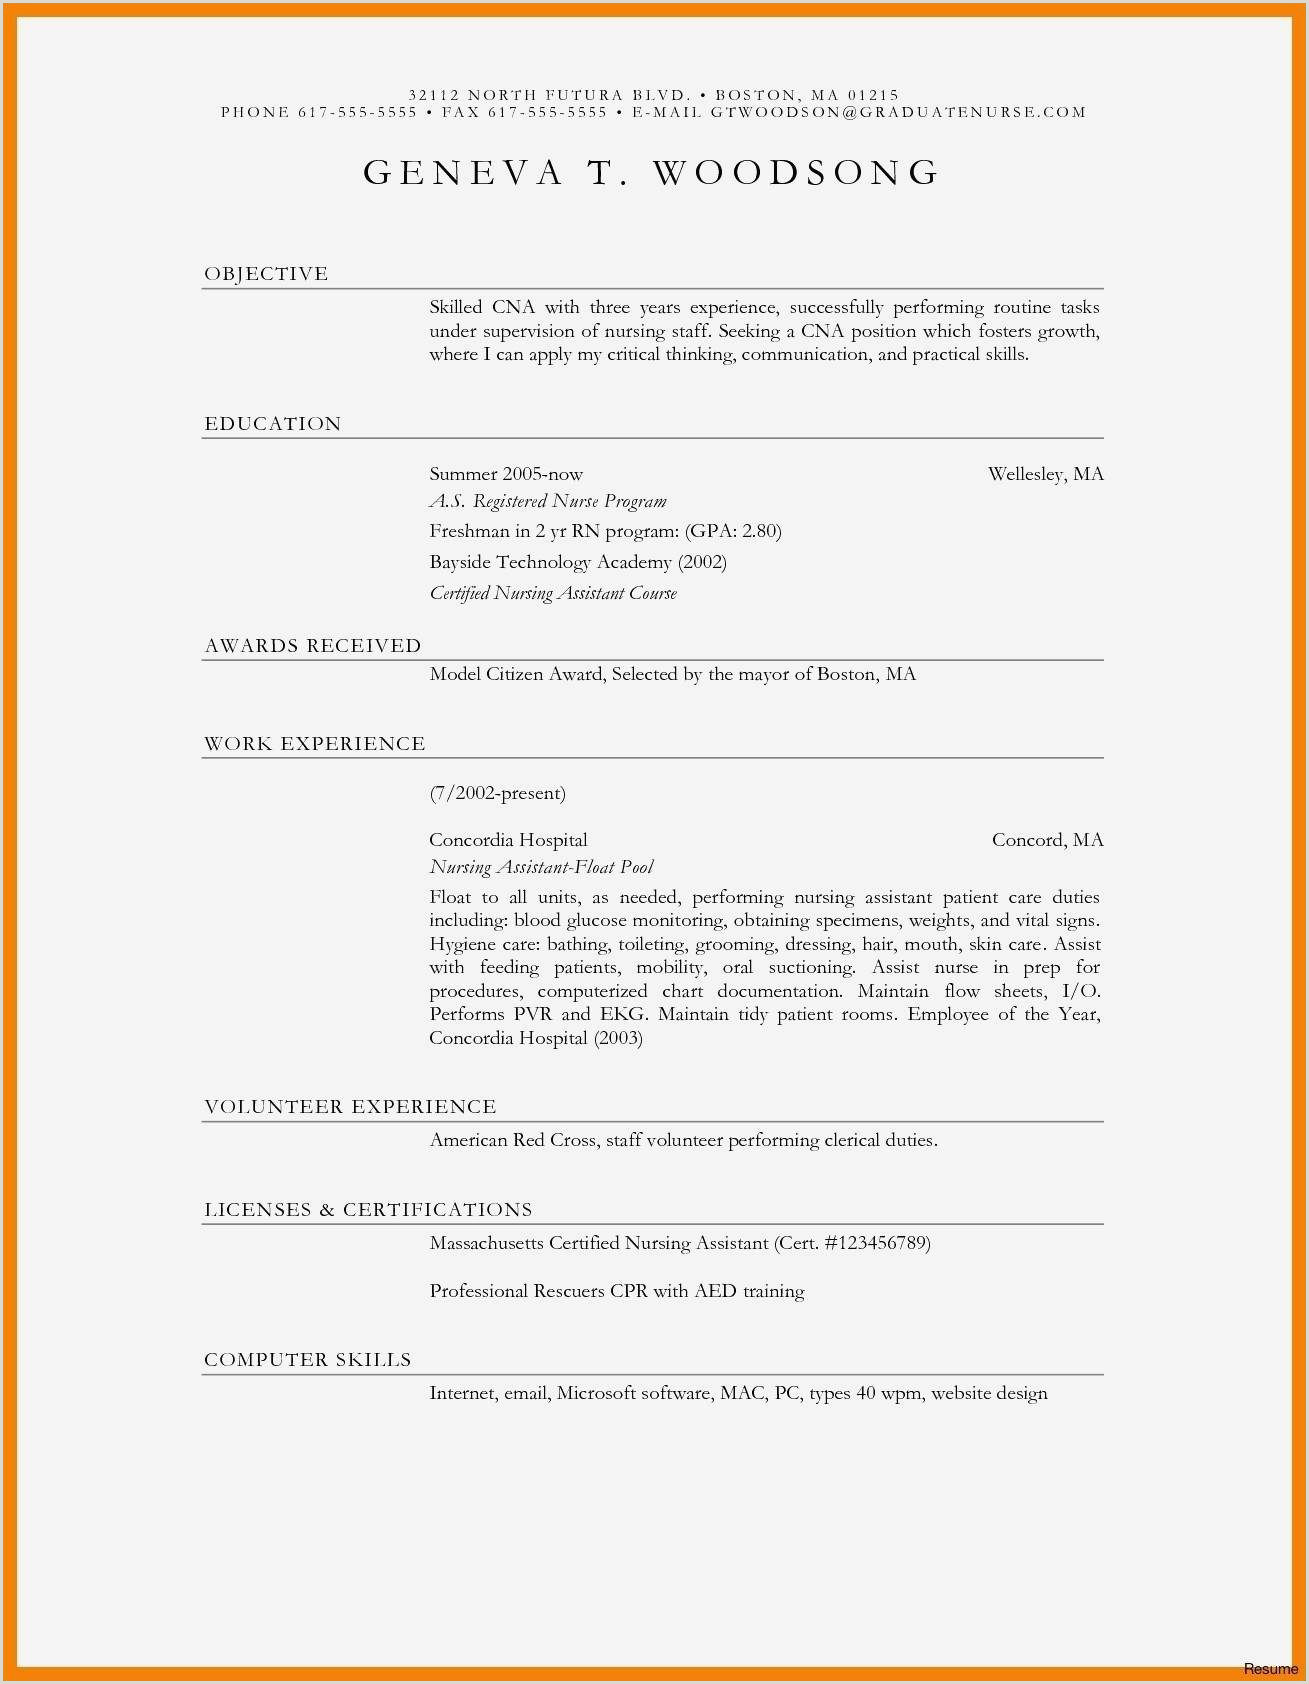 Standard Cv Writing format Cv Libre Fice Le Luxe New Blank Resume format Resume